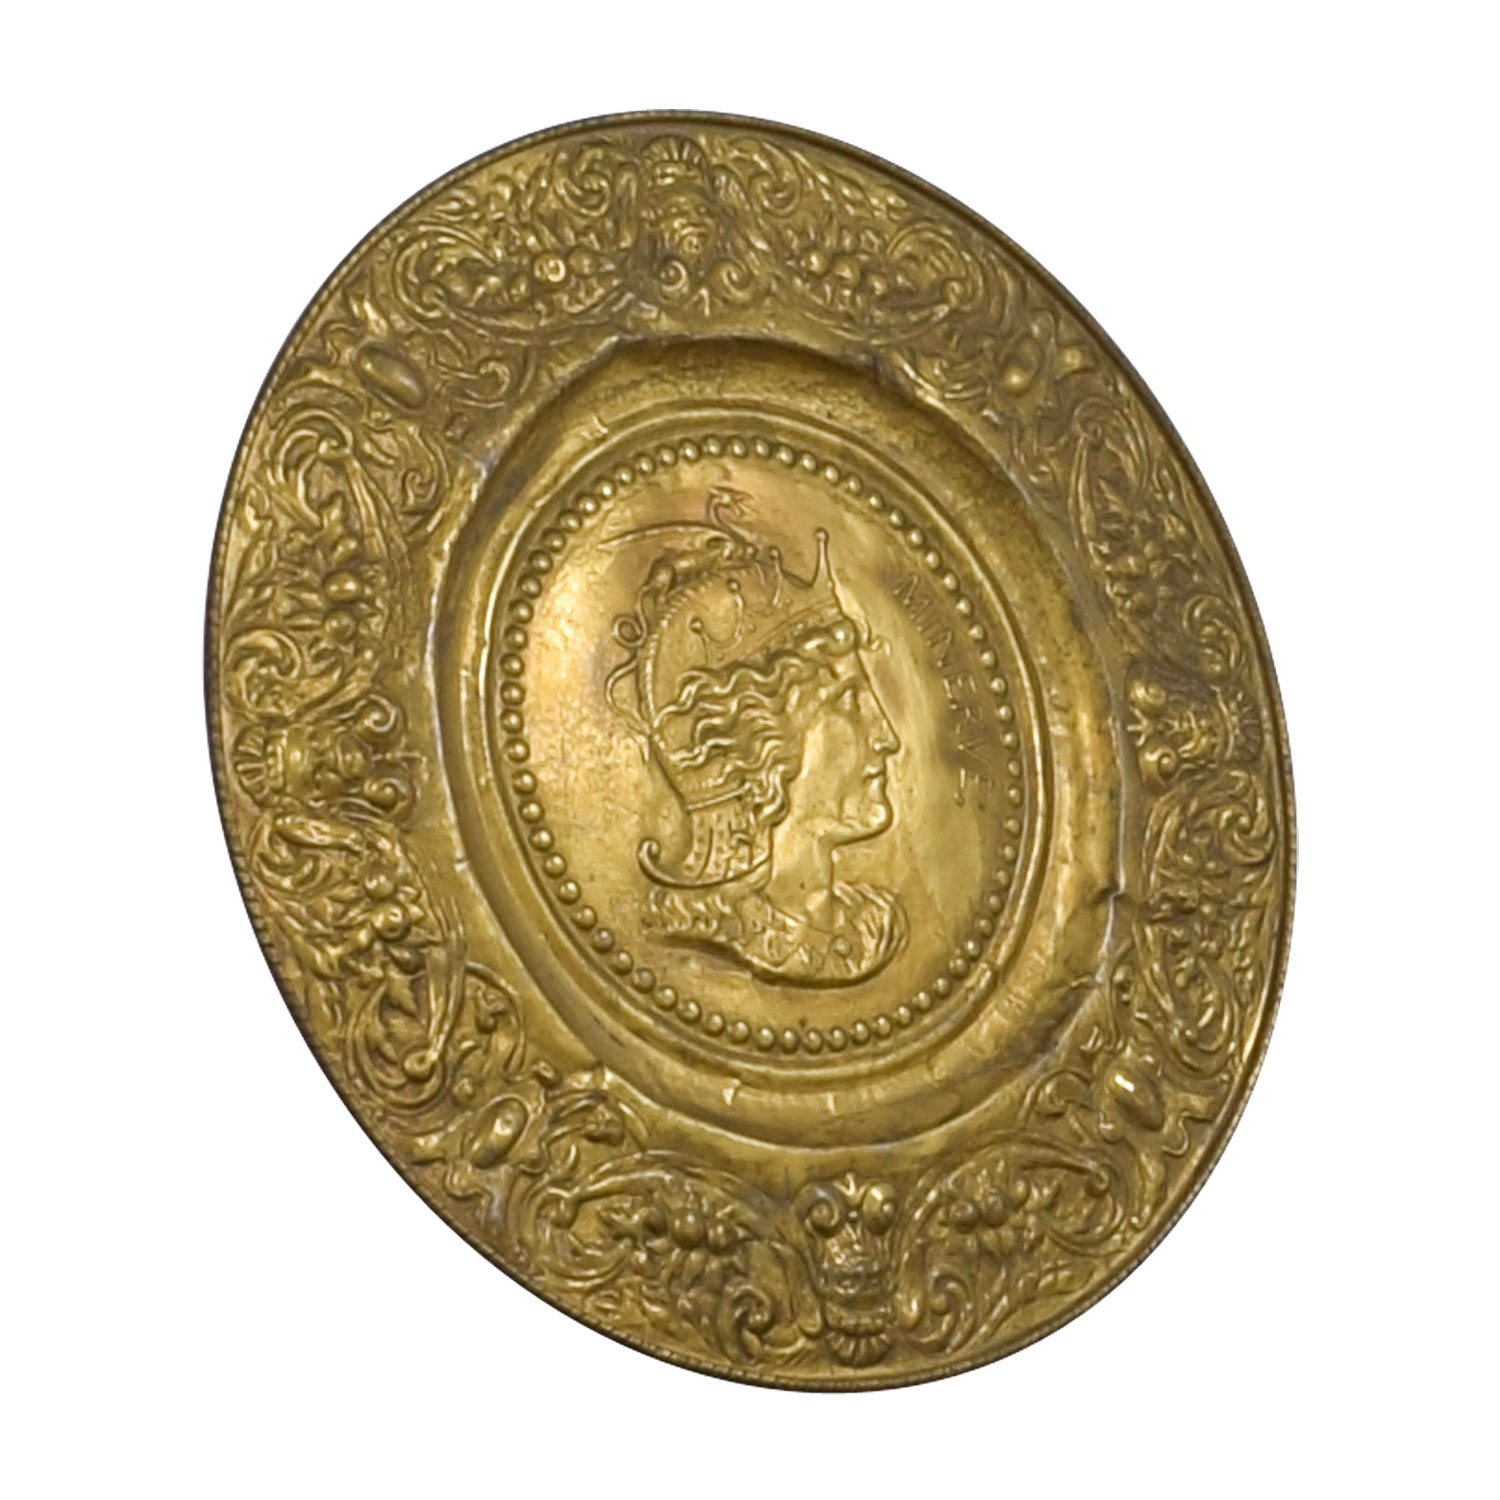 90% Off - Minerva Antique Gold Shield / Decor pertaining to Minerva Accent Mirrors (Image 2 of 30)